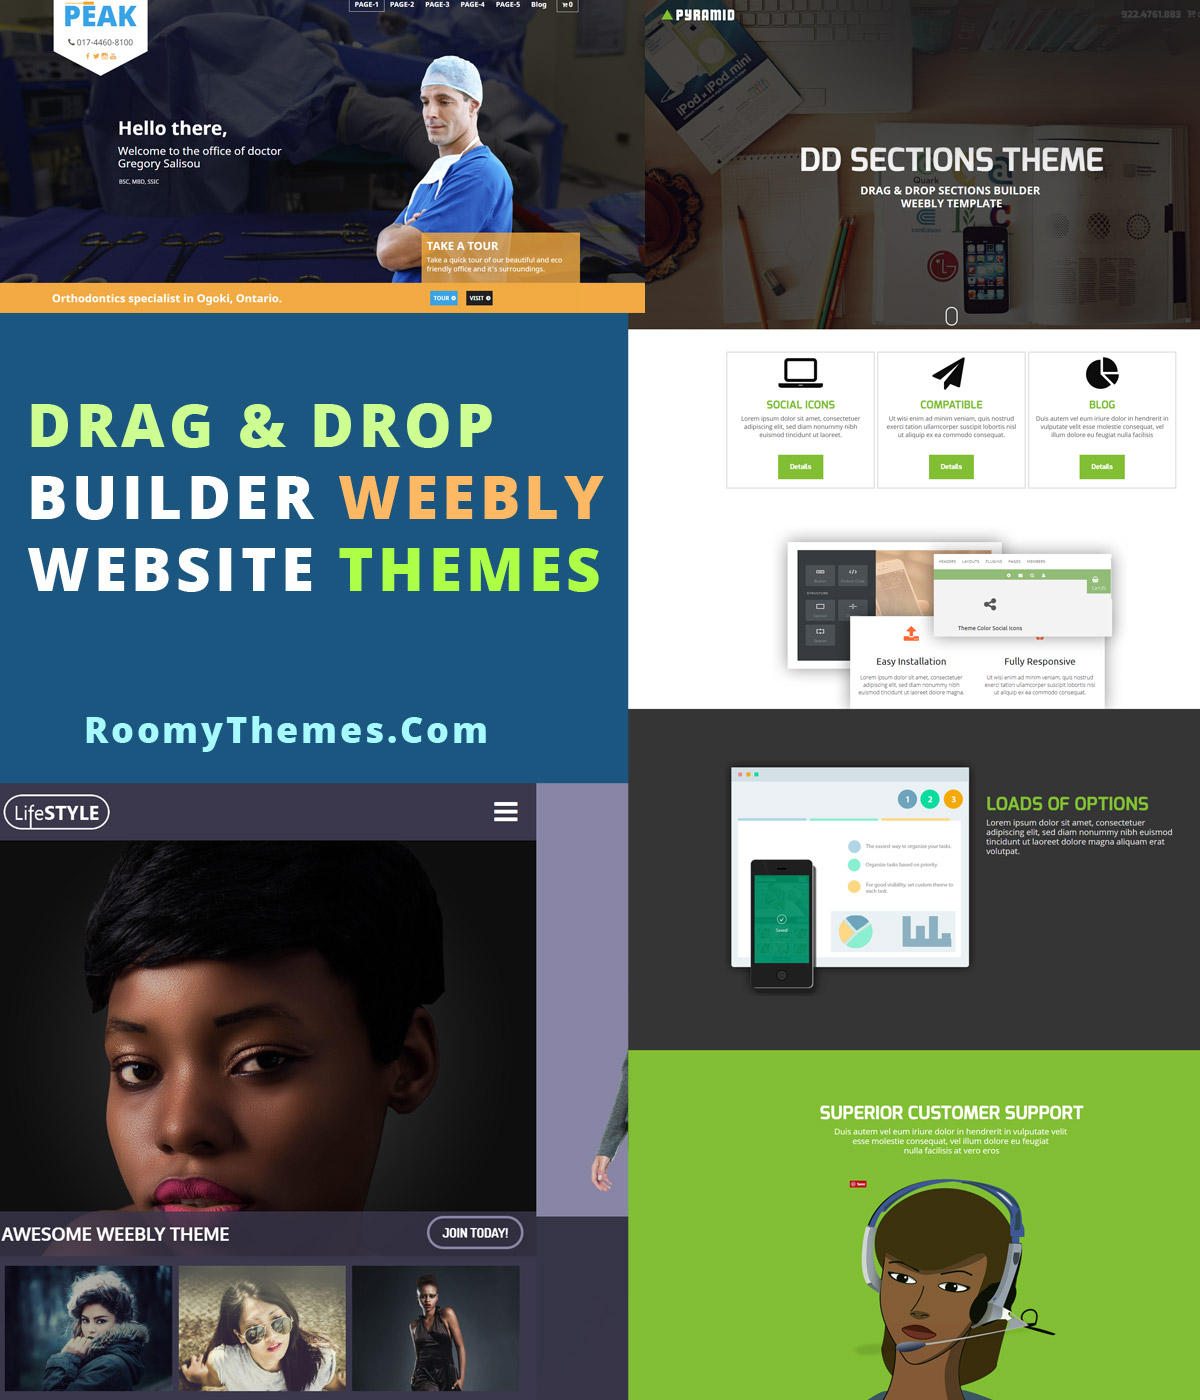 Easy weebly themes the most easy to use weebly templates for Weebly drag and drop templates